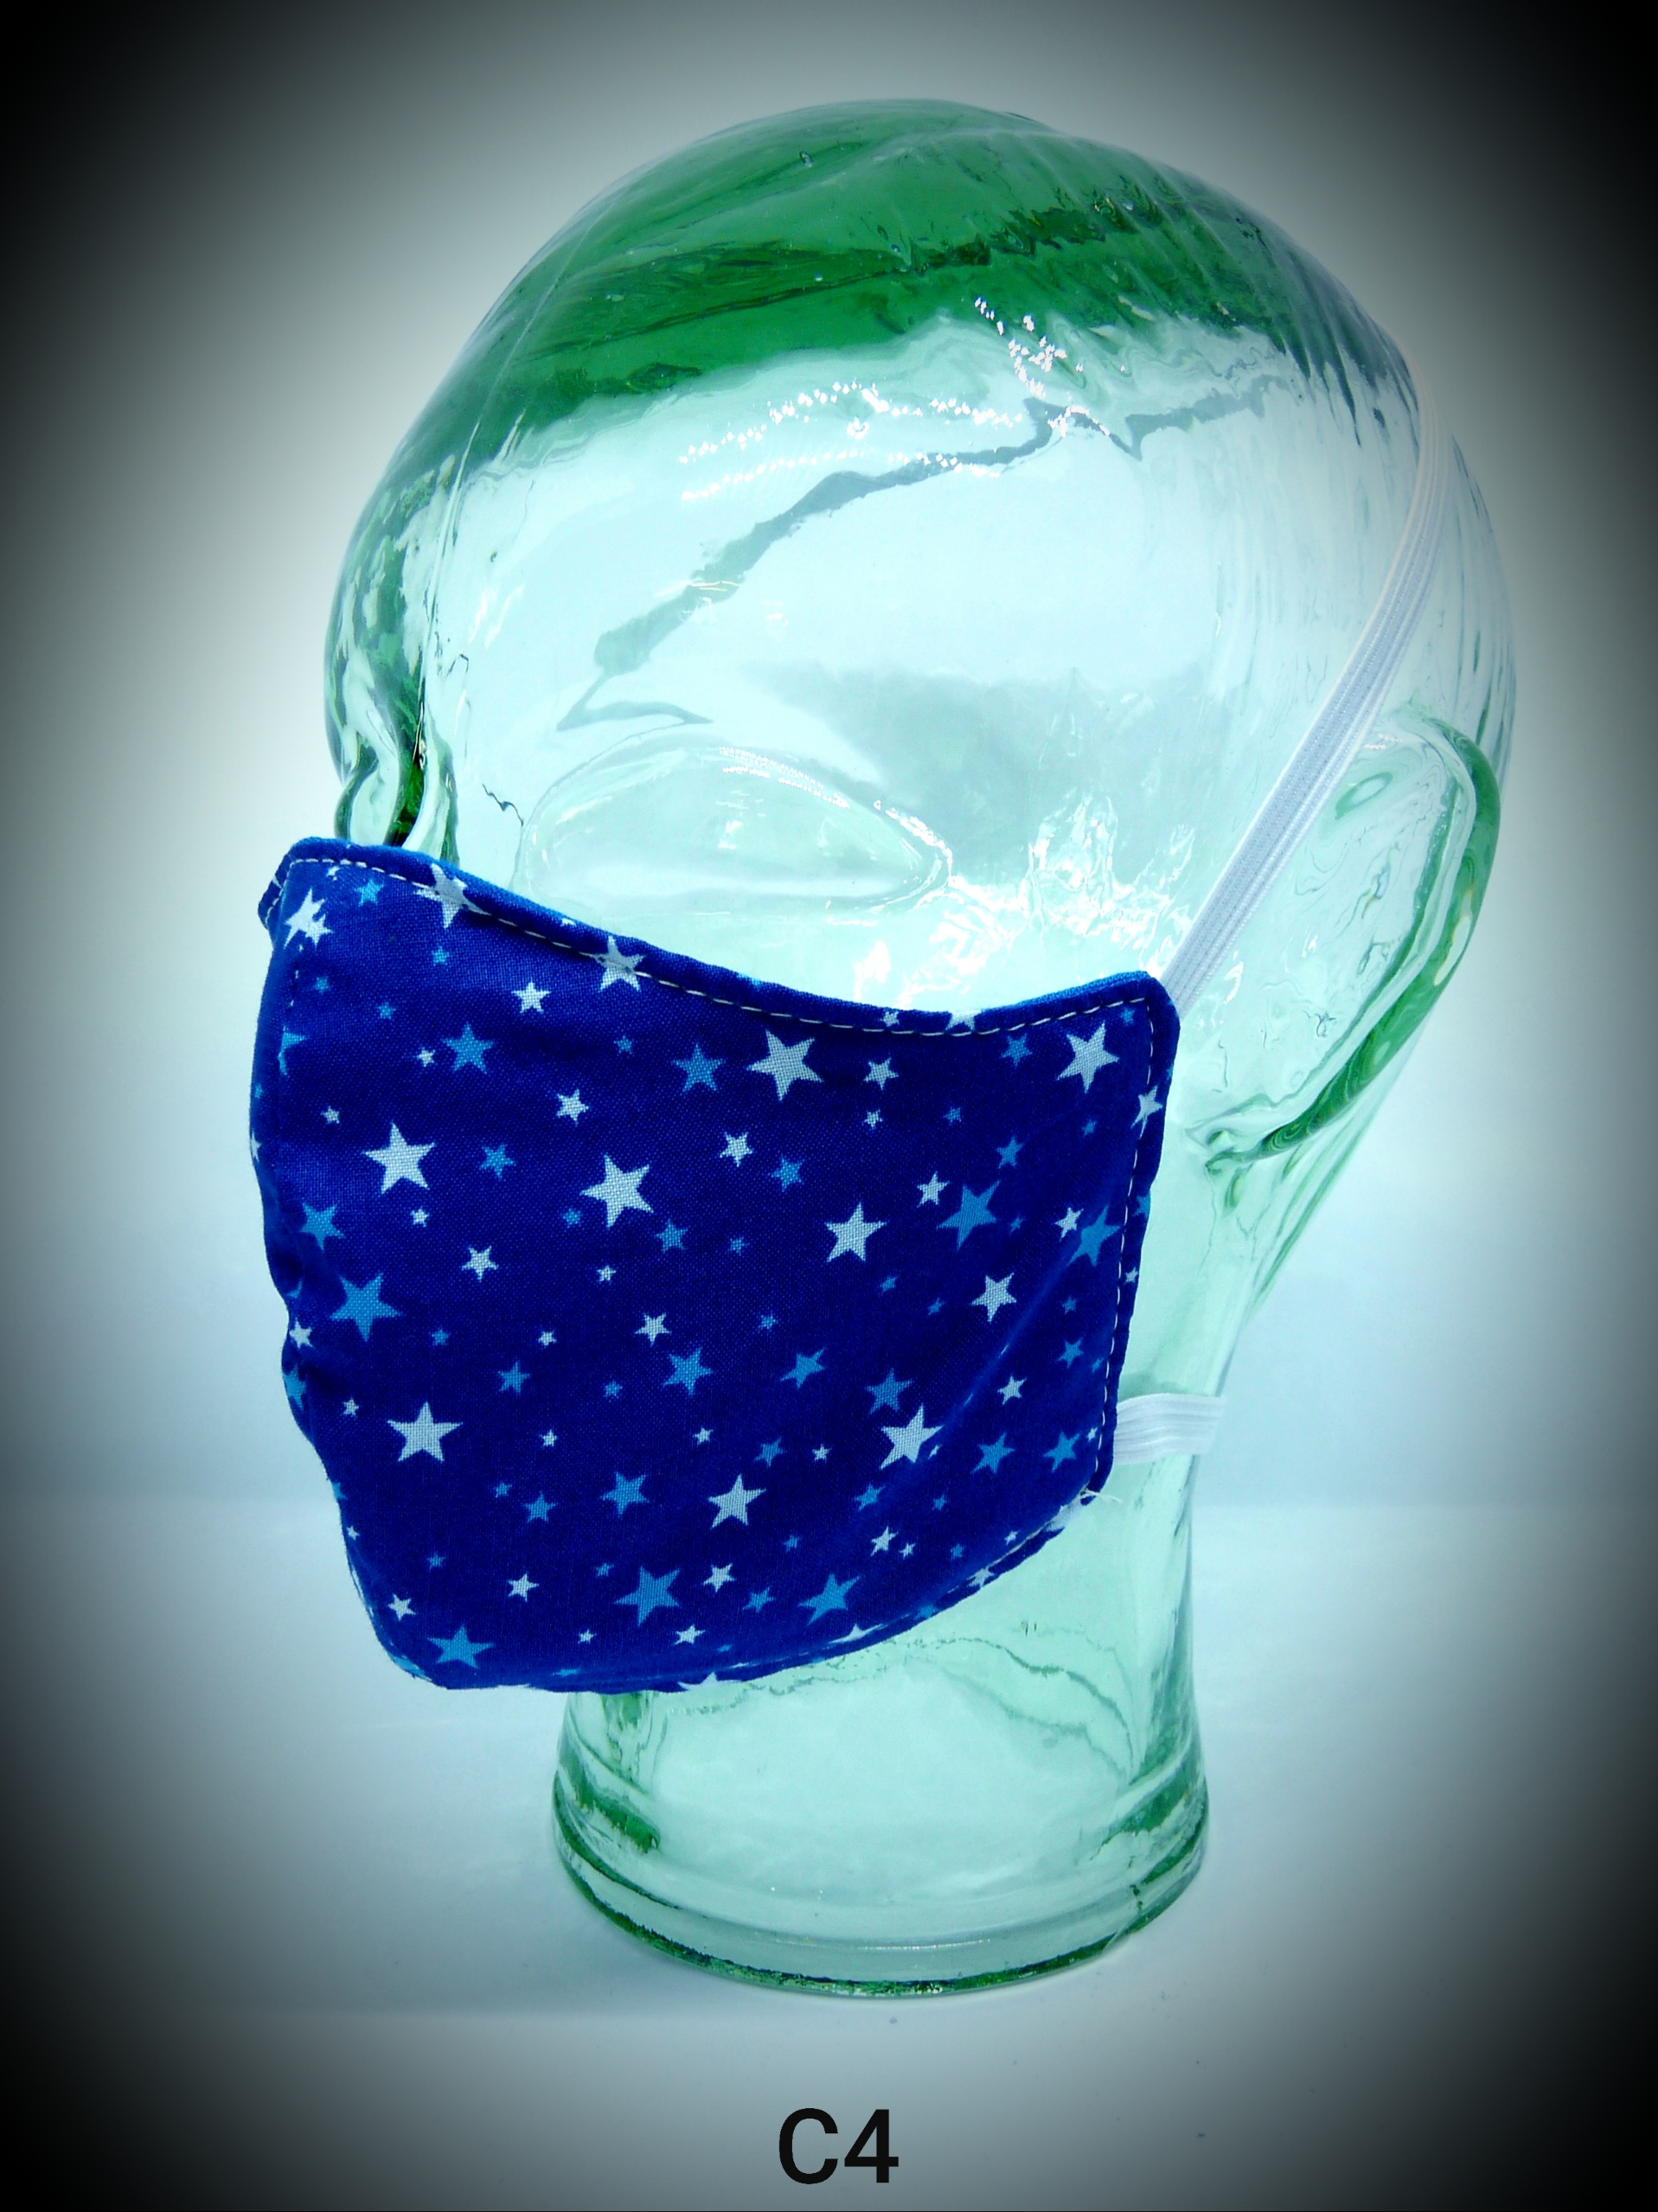 face mask washable reusable ppe c4 stars on dark blue fabric